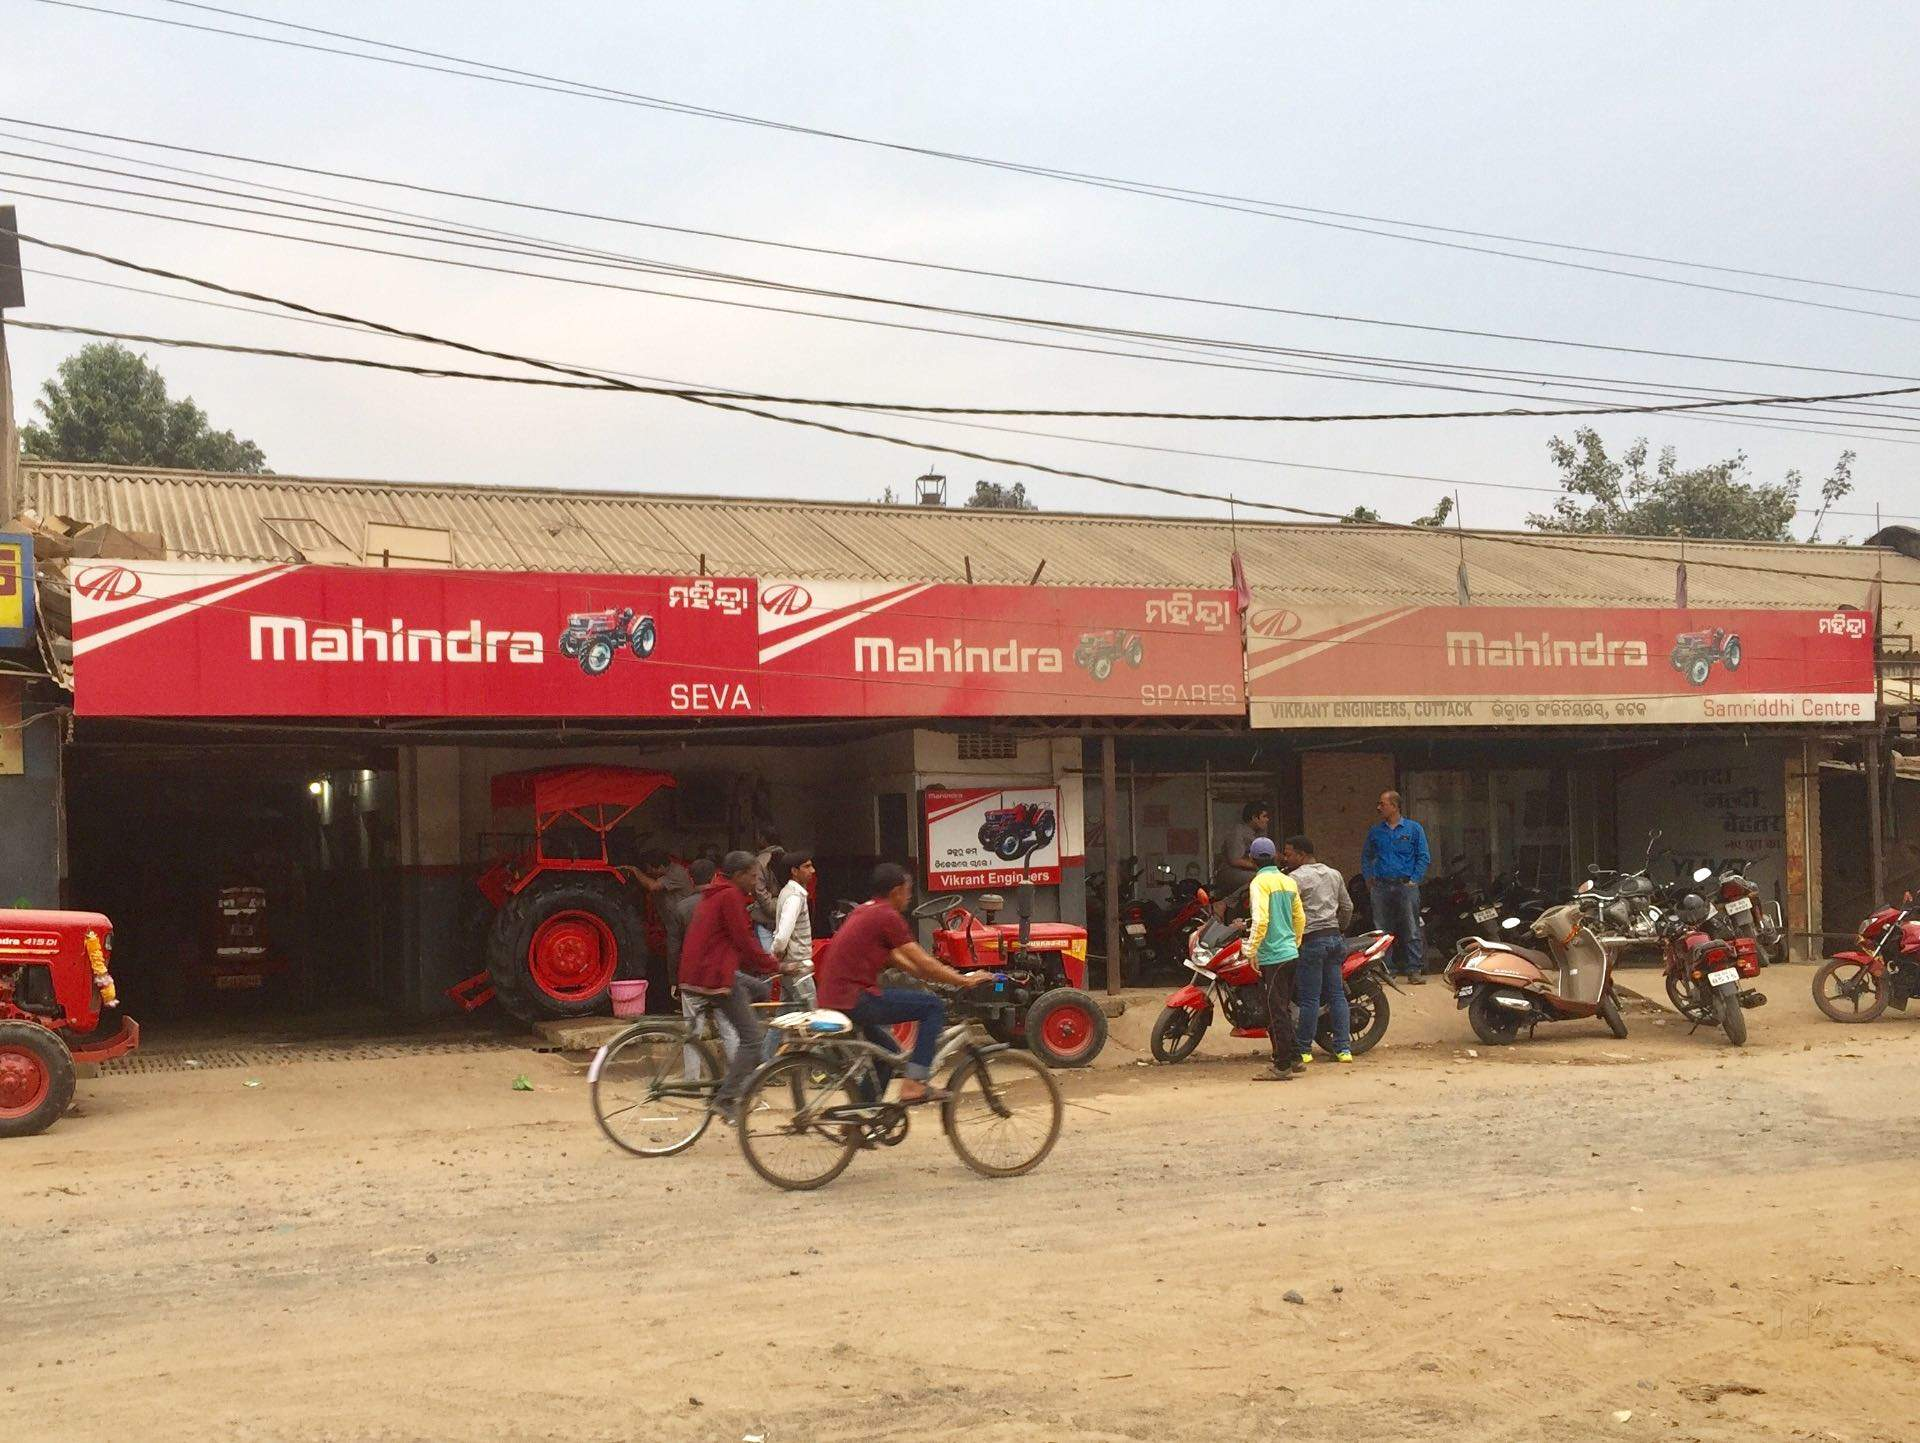 Top Mahindra Tractor Dealers in Cuttack - Best Mahindra